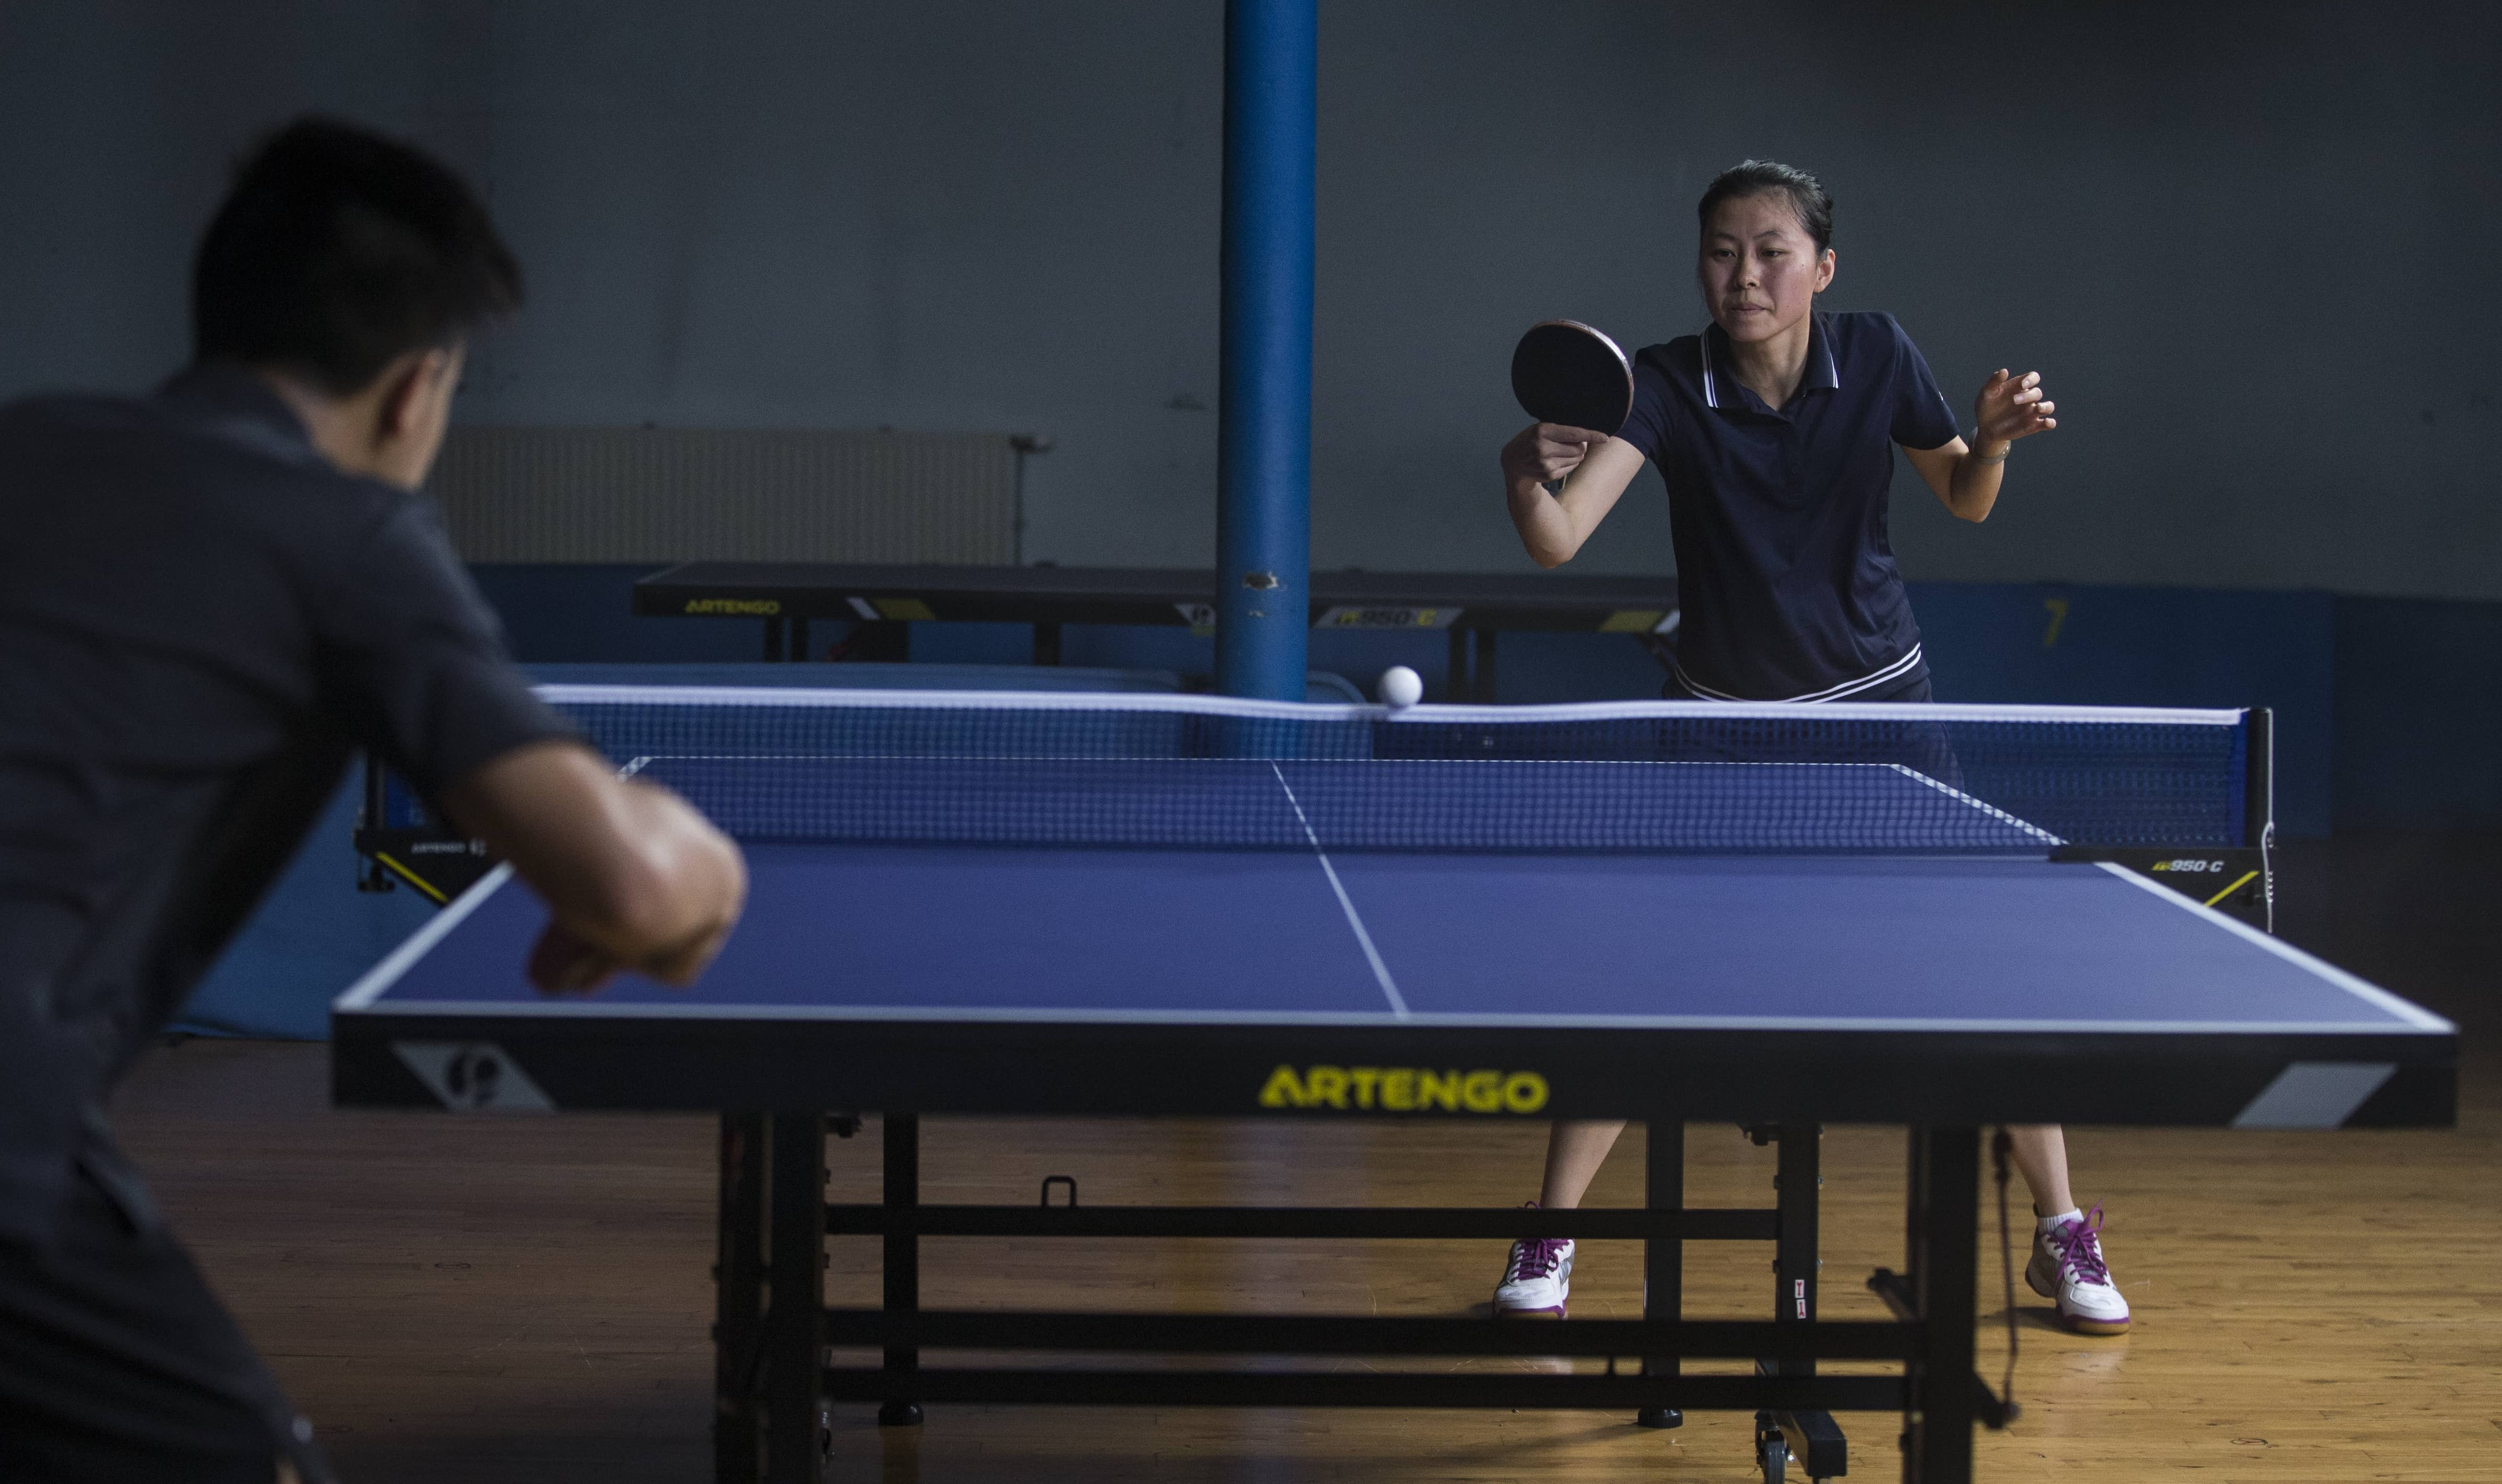 THE TABLE TENNIS JARGON